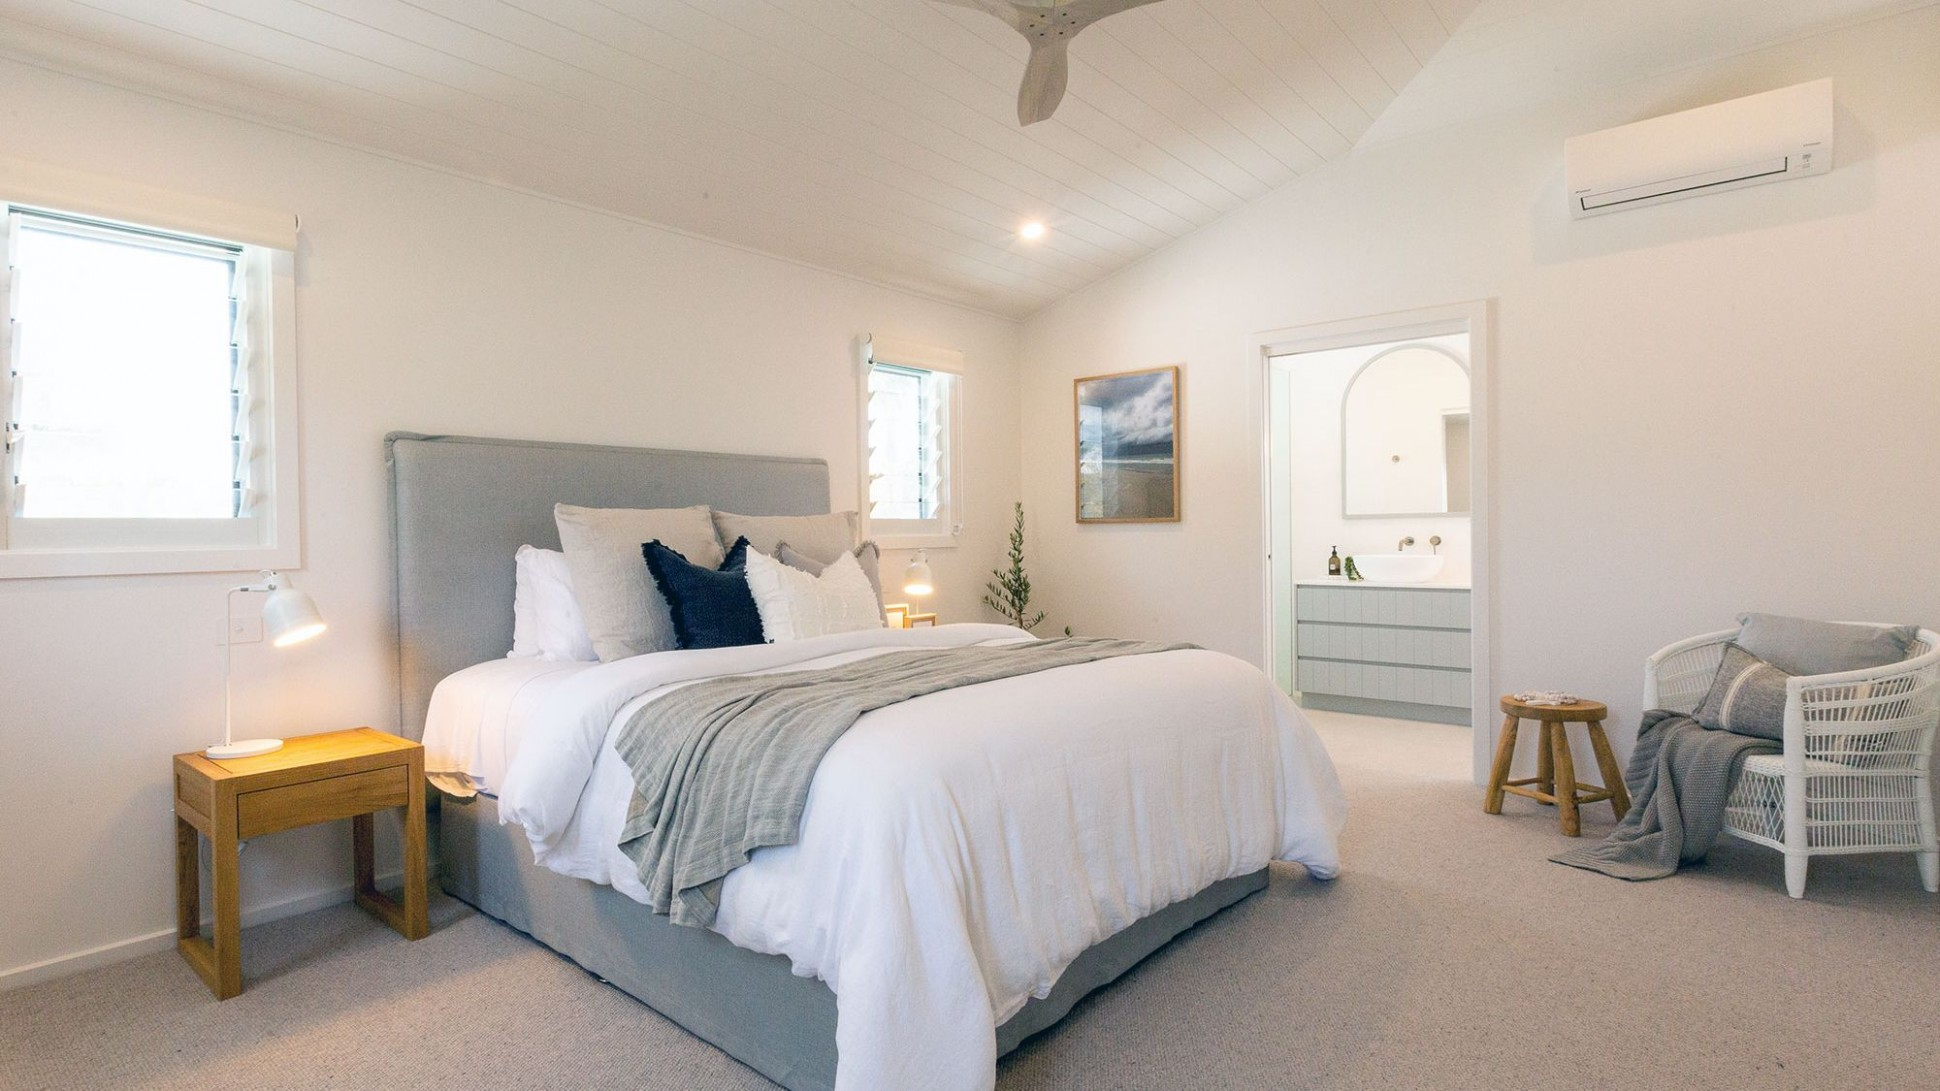 How to Achieve a Hamptons Style Bedroom - realestate.com